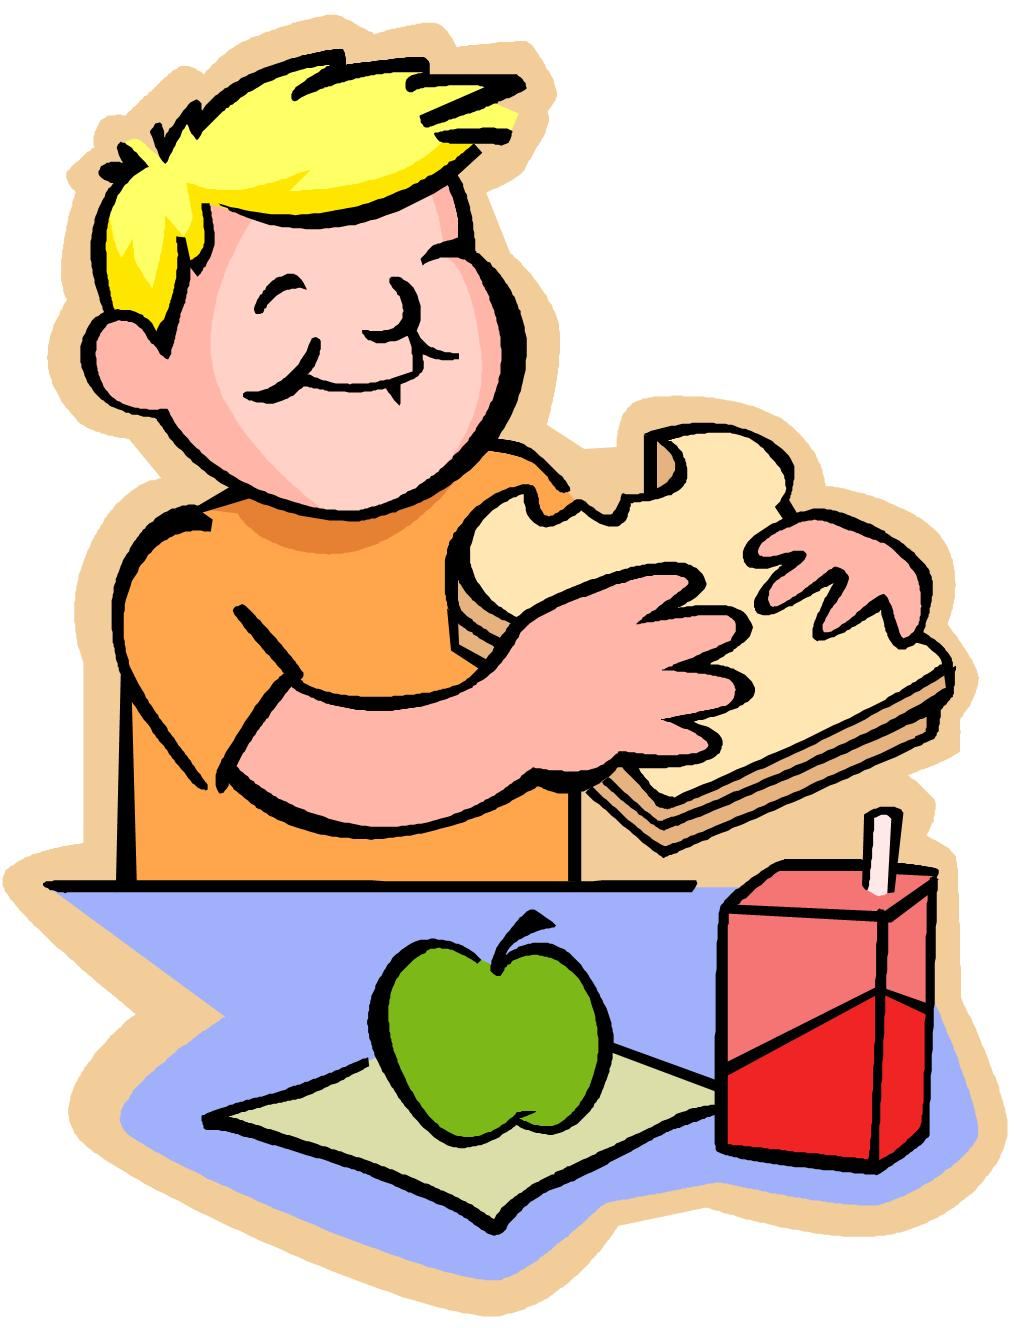 Lunch students go clipart